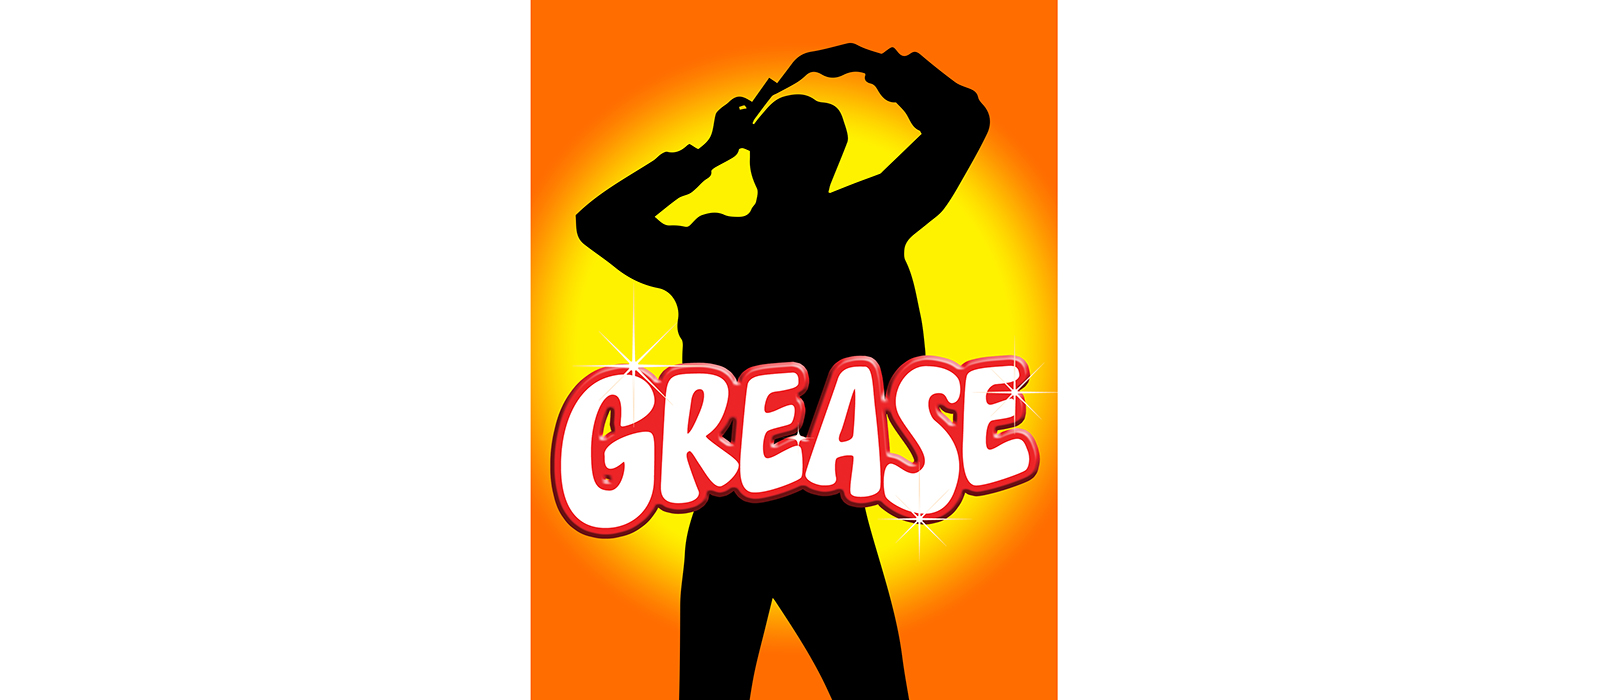 Grease-Poster-HI-1